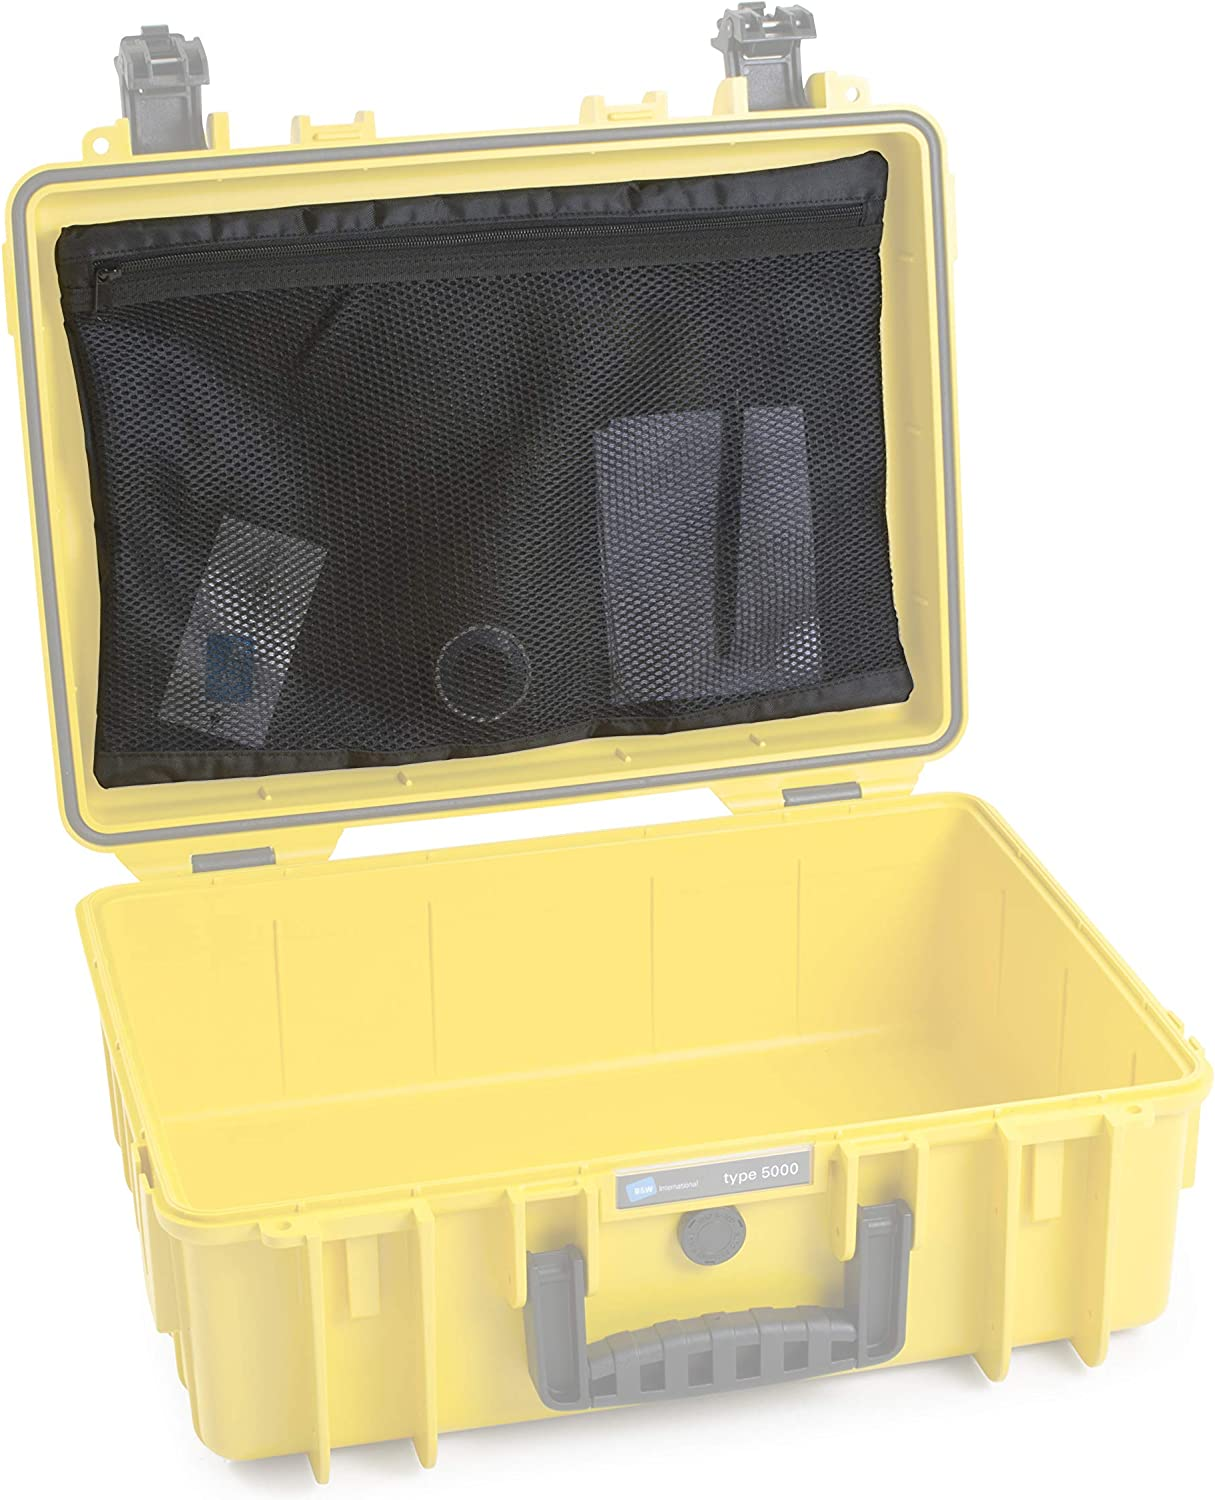 B&W Outdoor.Cases mesh Bag (MB) for Outdoor.case Type 5000, 5500 - The Original